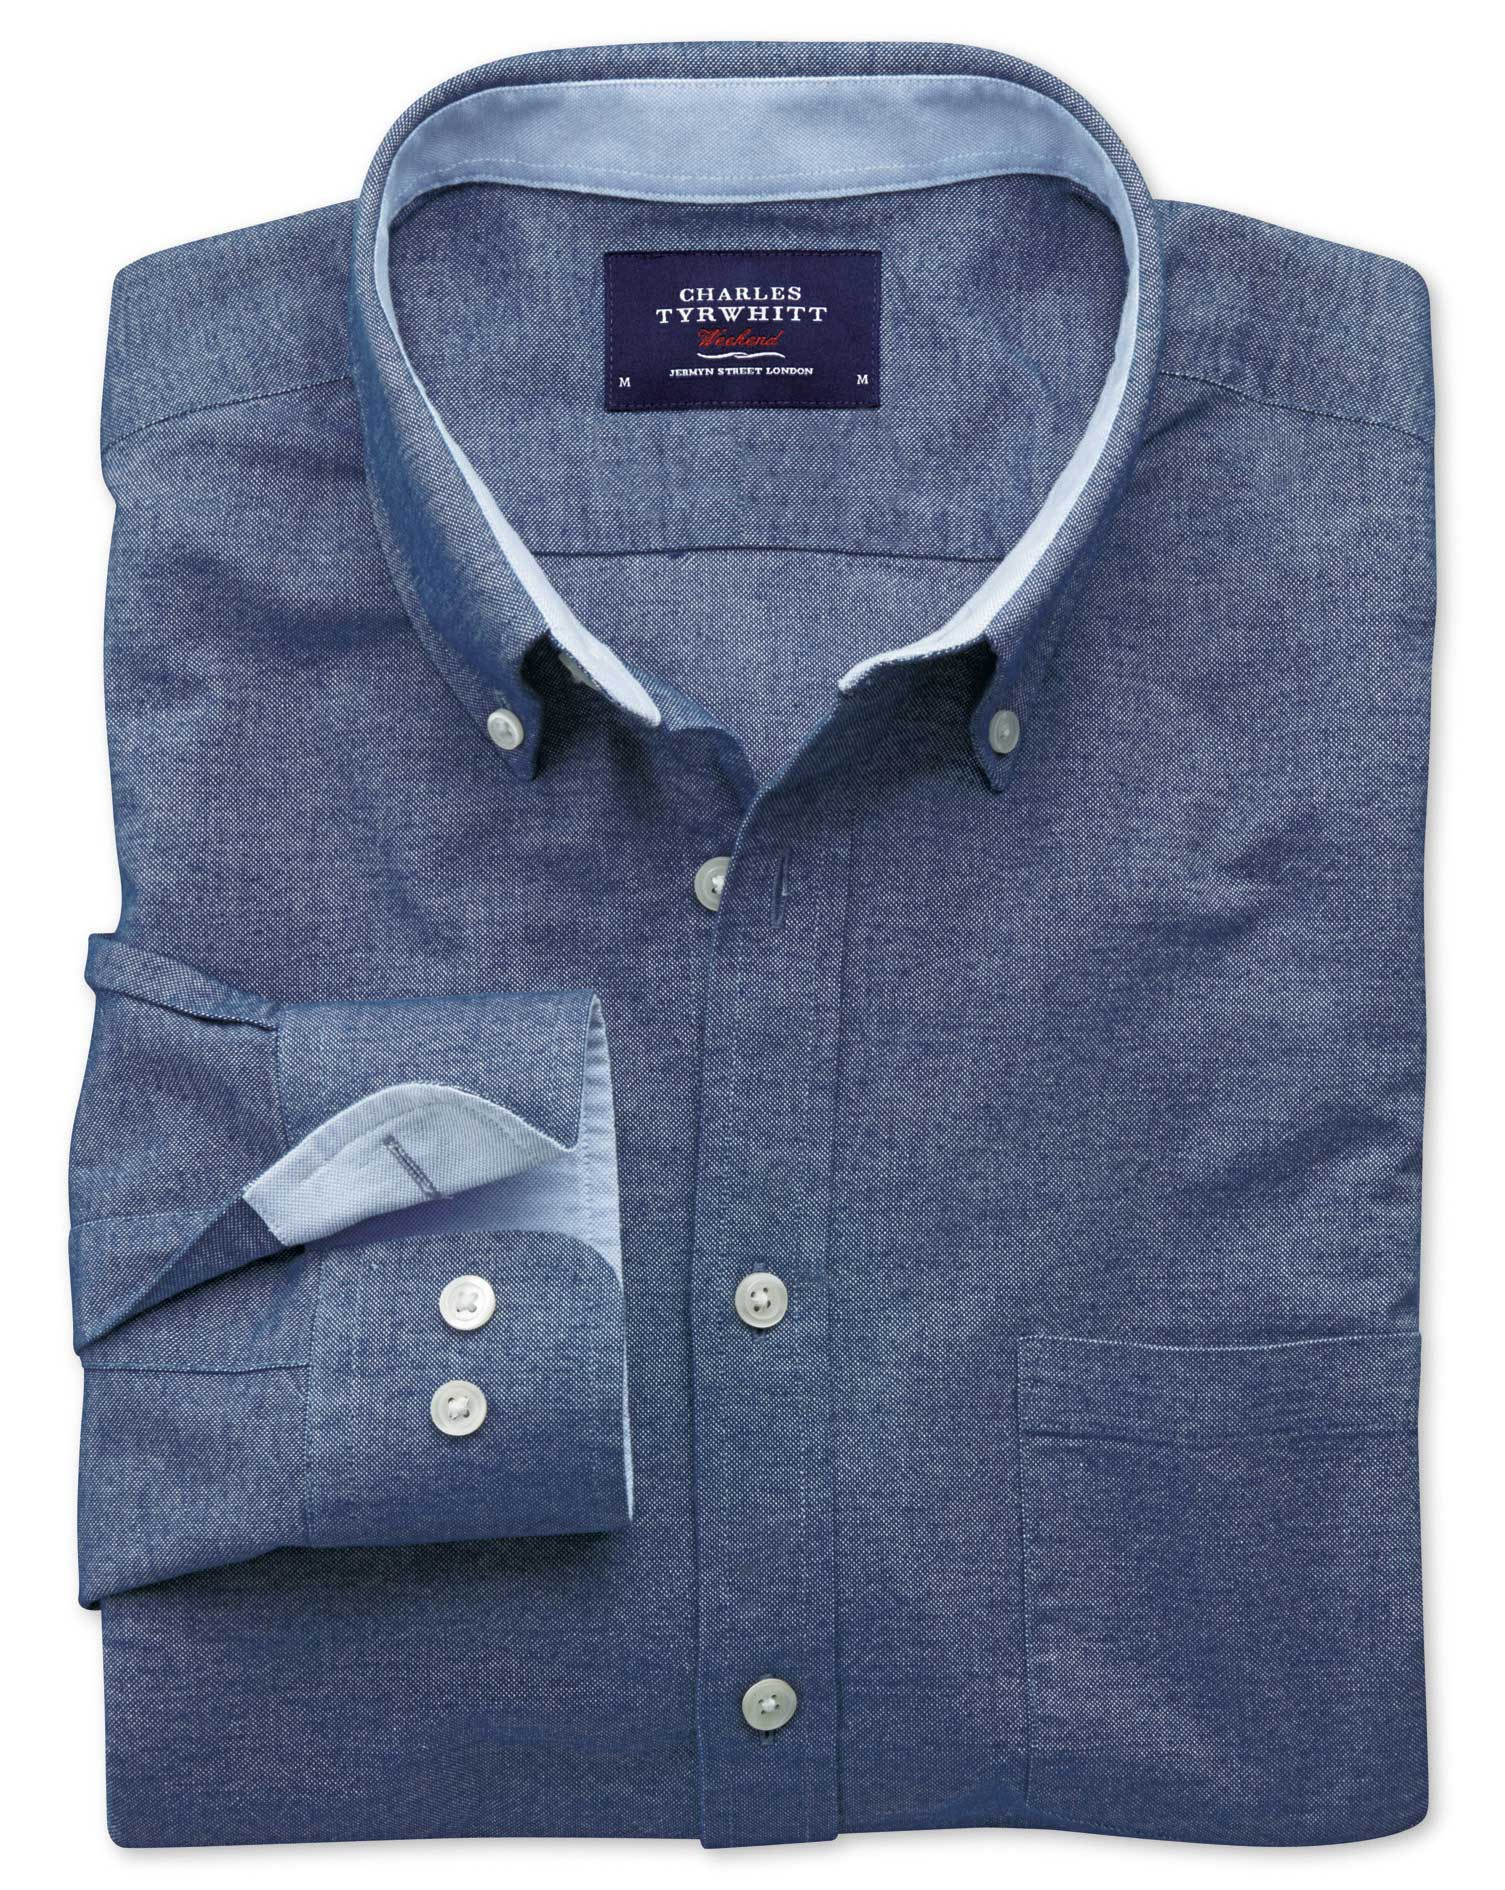 Extra Slim Fit Blue Washed Oxford Cotton Shirt Single Cuff Size Large by Charles Tyrwhitt